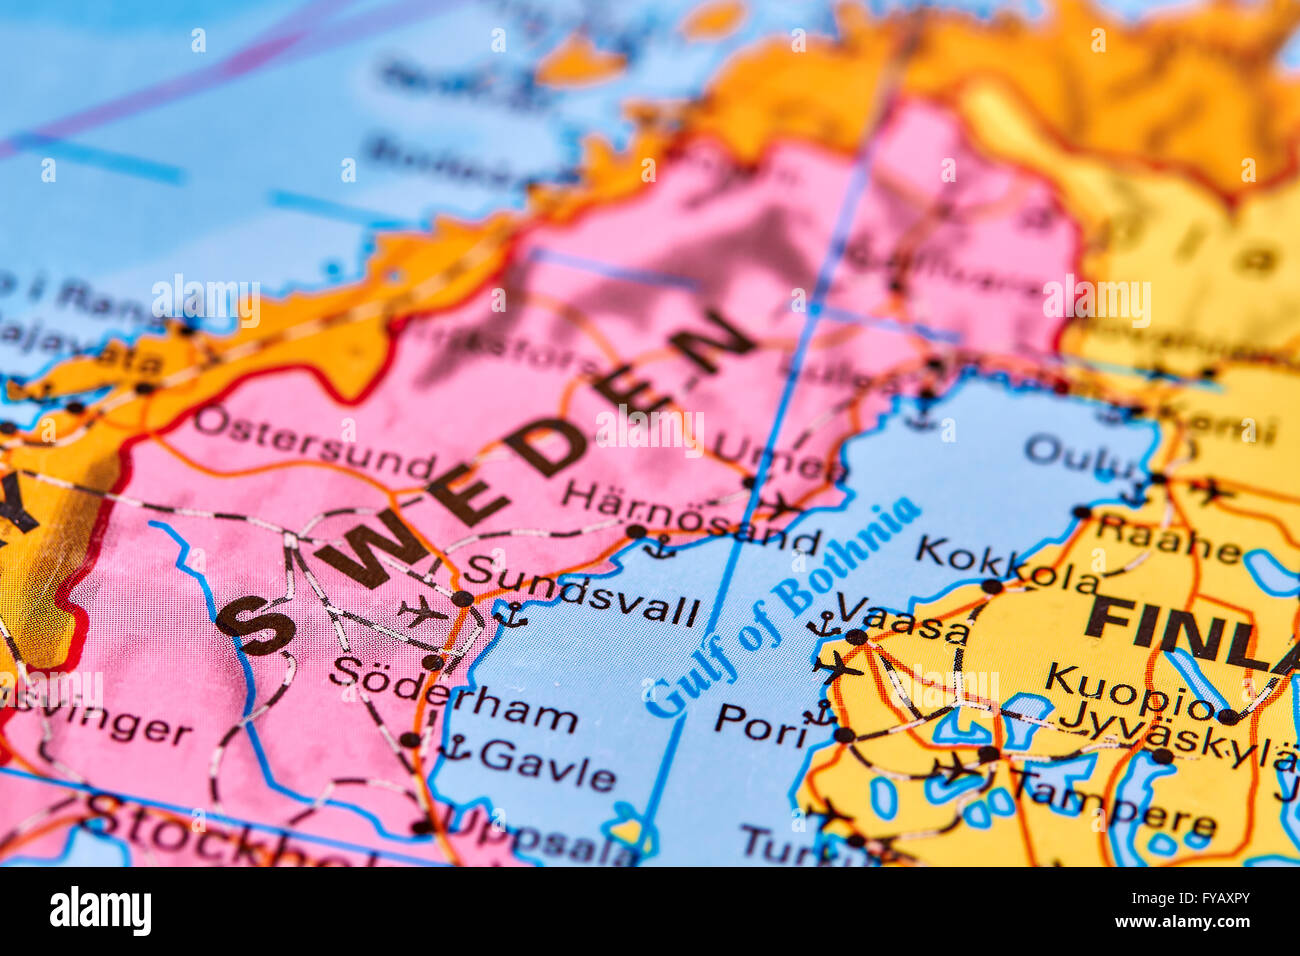 Sweden country in europe on the world map stock photo 102888099 sweden country in europe on the world map gumiabroncs